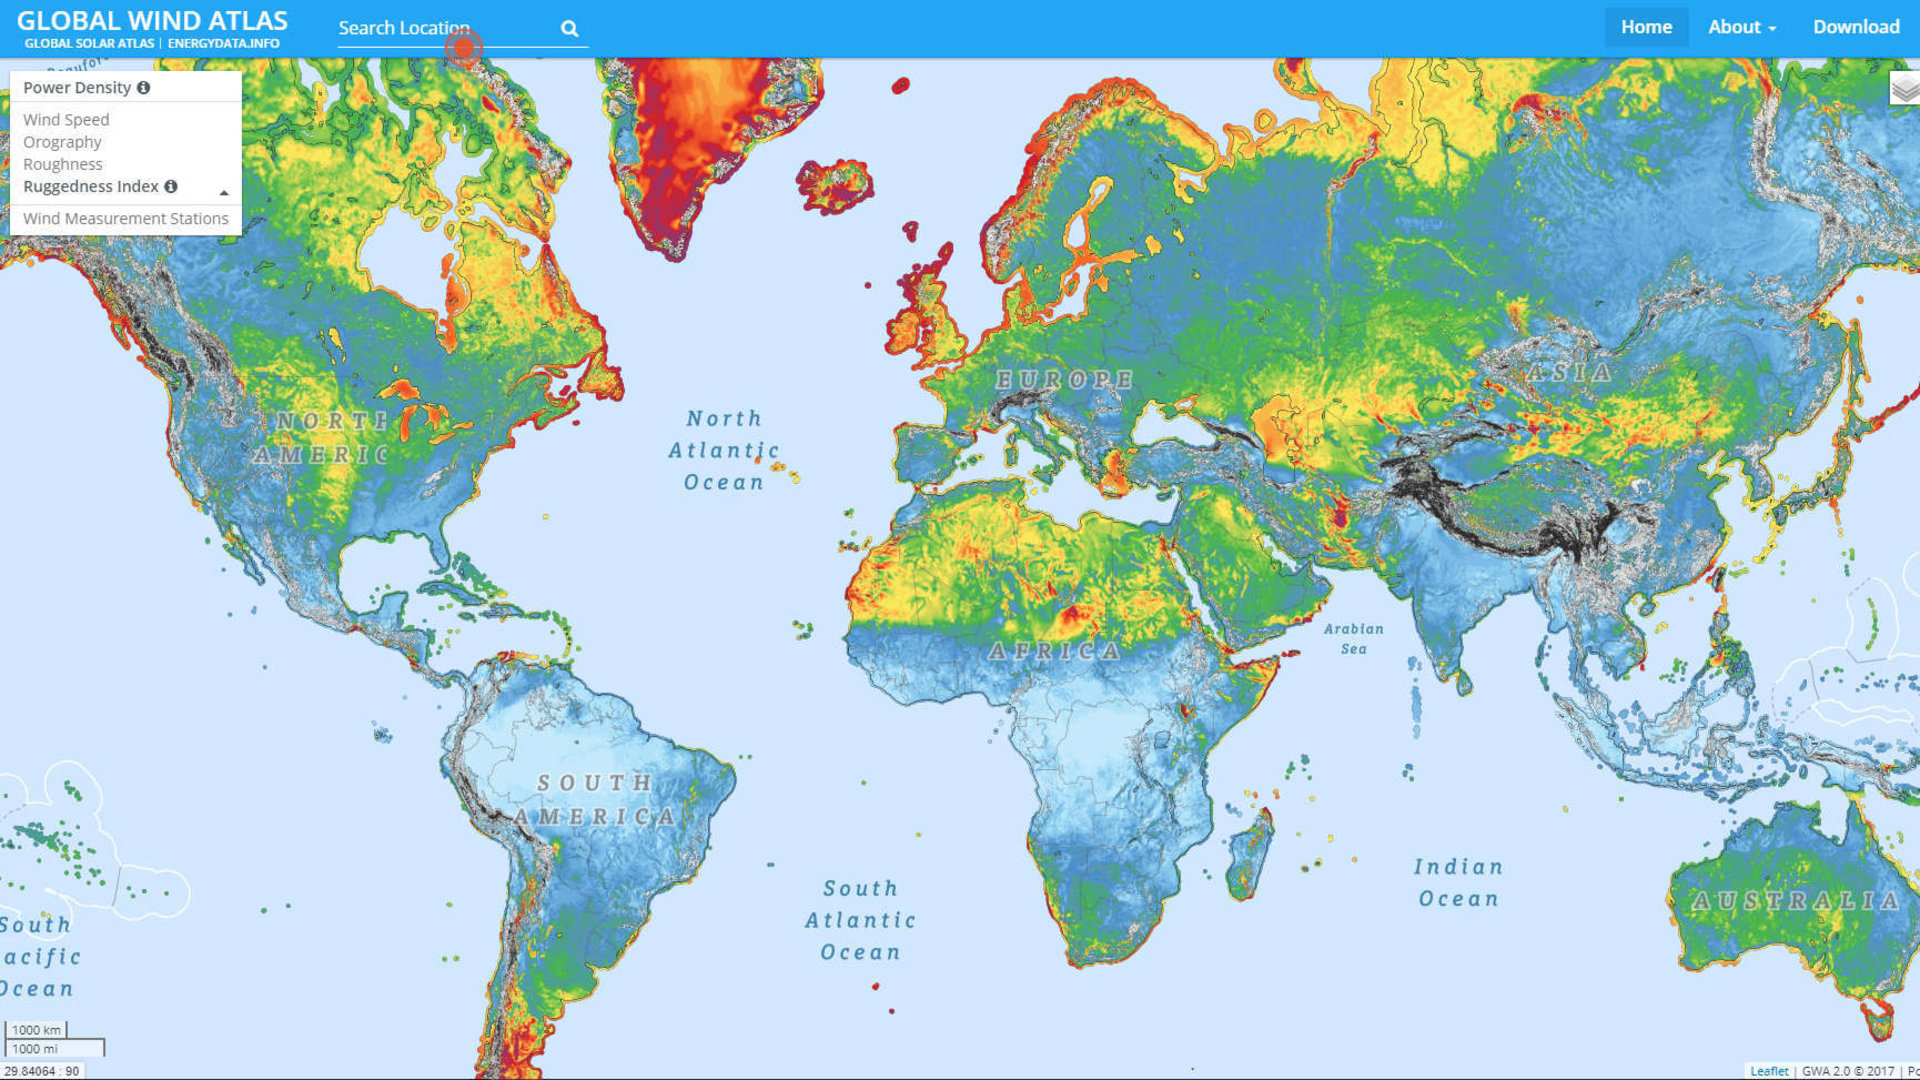 Putting renewable energy on the map / Energy / Space for ... on wind direction map, global wind direction, wind speed map, global wind patterns, wind belt map, wind resource map, prevailing winds caroline islands map, north america wind map, local winds map, surface winds map, jet stream map, humidity map, world winds map, wind currents map, global wind currents, wind energy map, ocean winds map, global wind zones, real-time wind map, trade winds map,